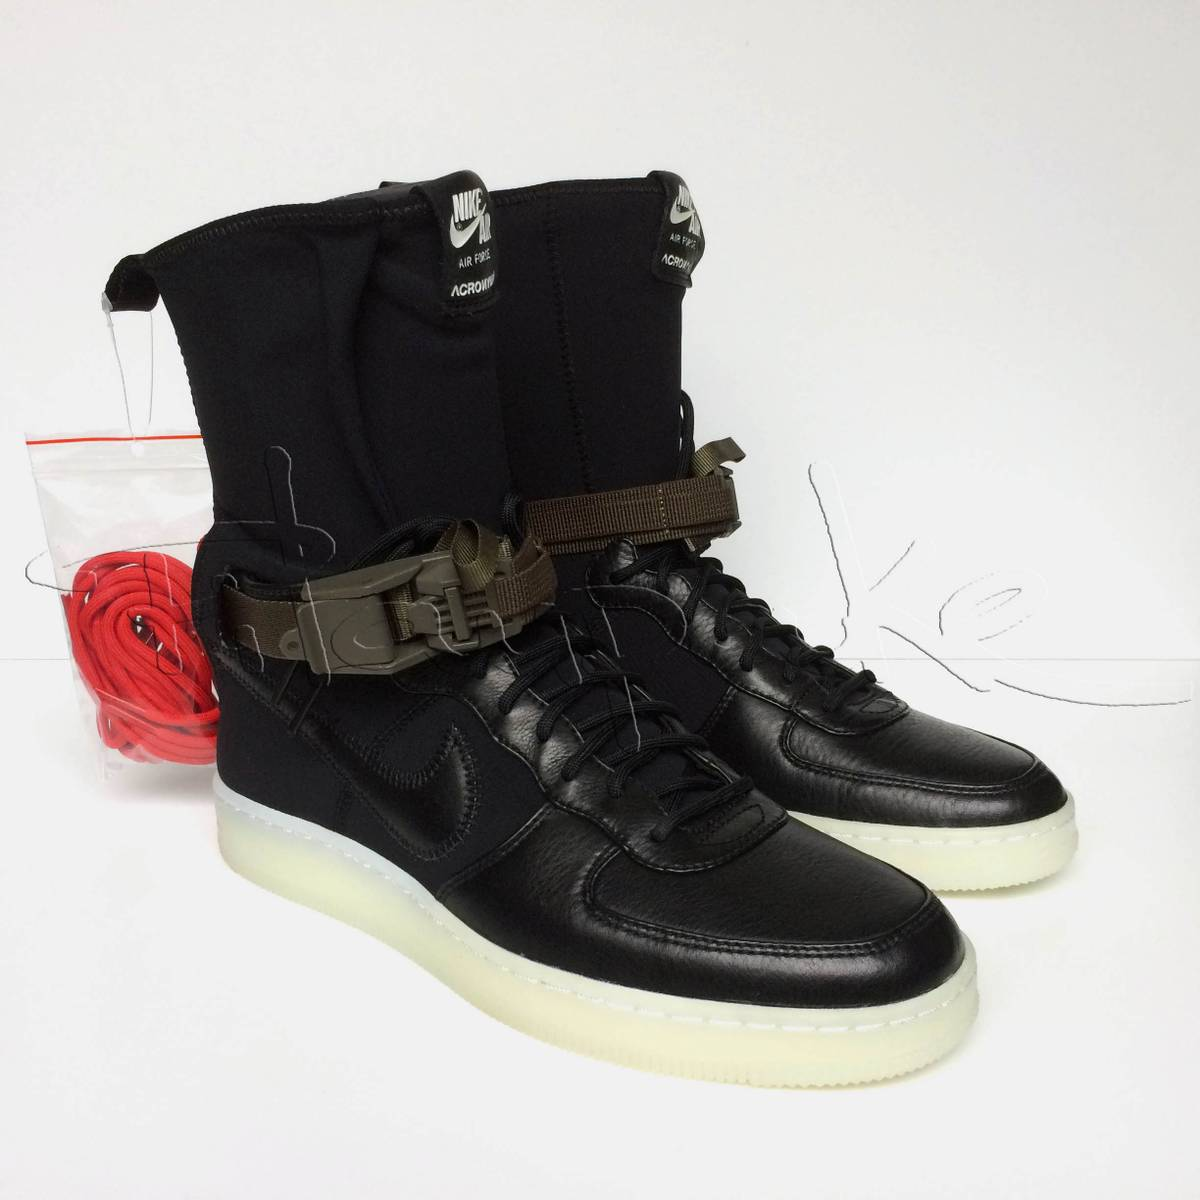 ... wholesaler cb6f8 49ca4 Nike Nike NikeLab x Acronym Air Force 1   detailing f93fc 969bd Nike x Acronym Air Force 1 Downtown Hi SP Black  Bright Crimson ... 8dfcebbbf